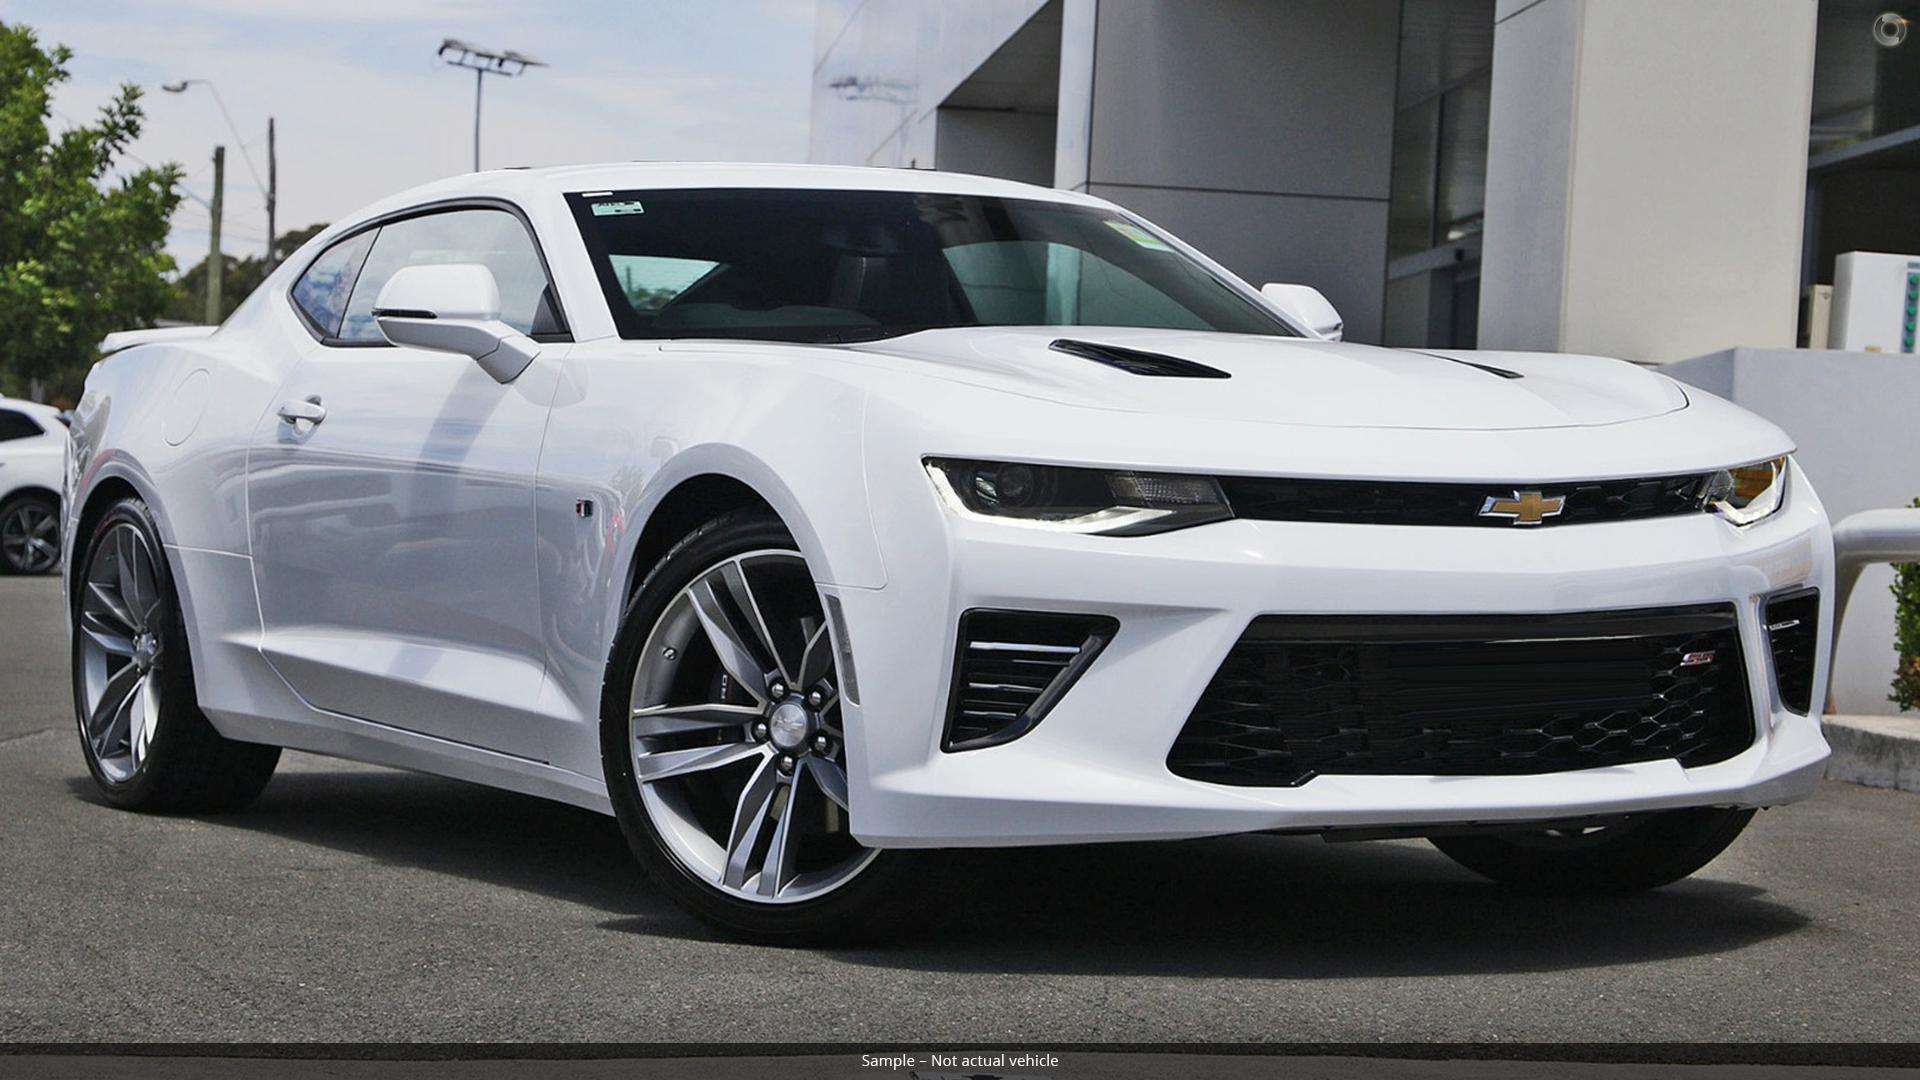 2018 Chevrolet Camaro 2SS (No Series)